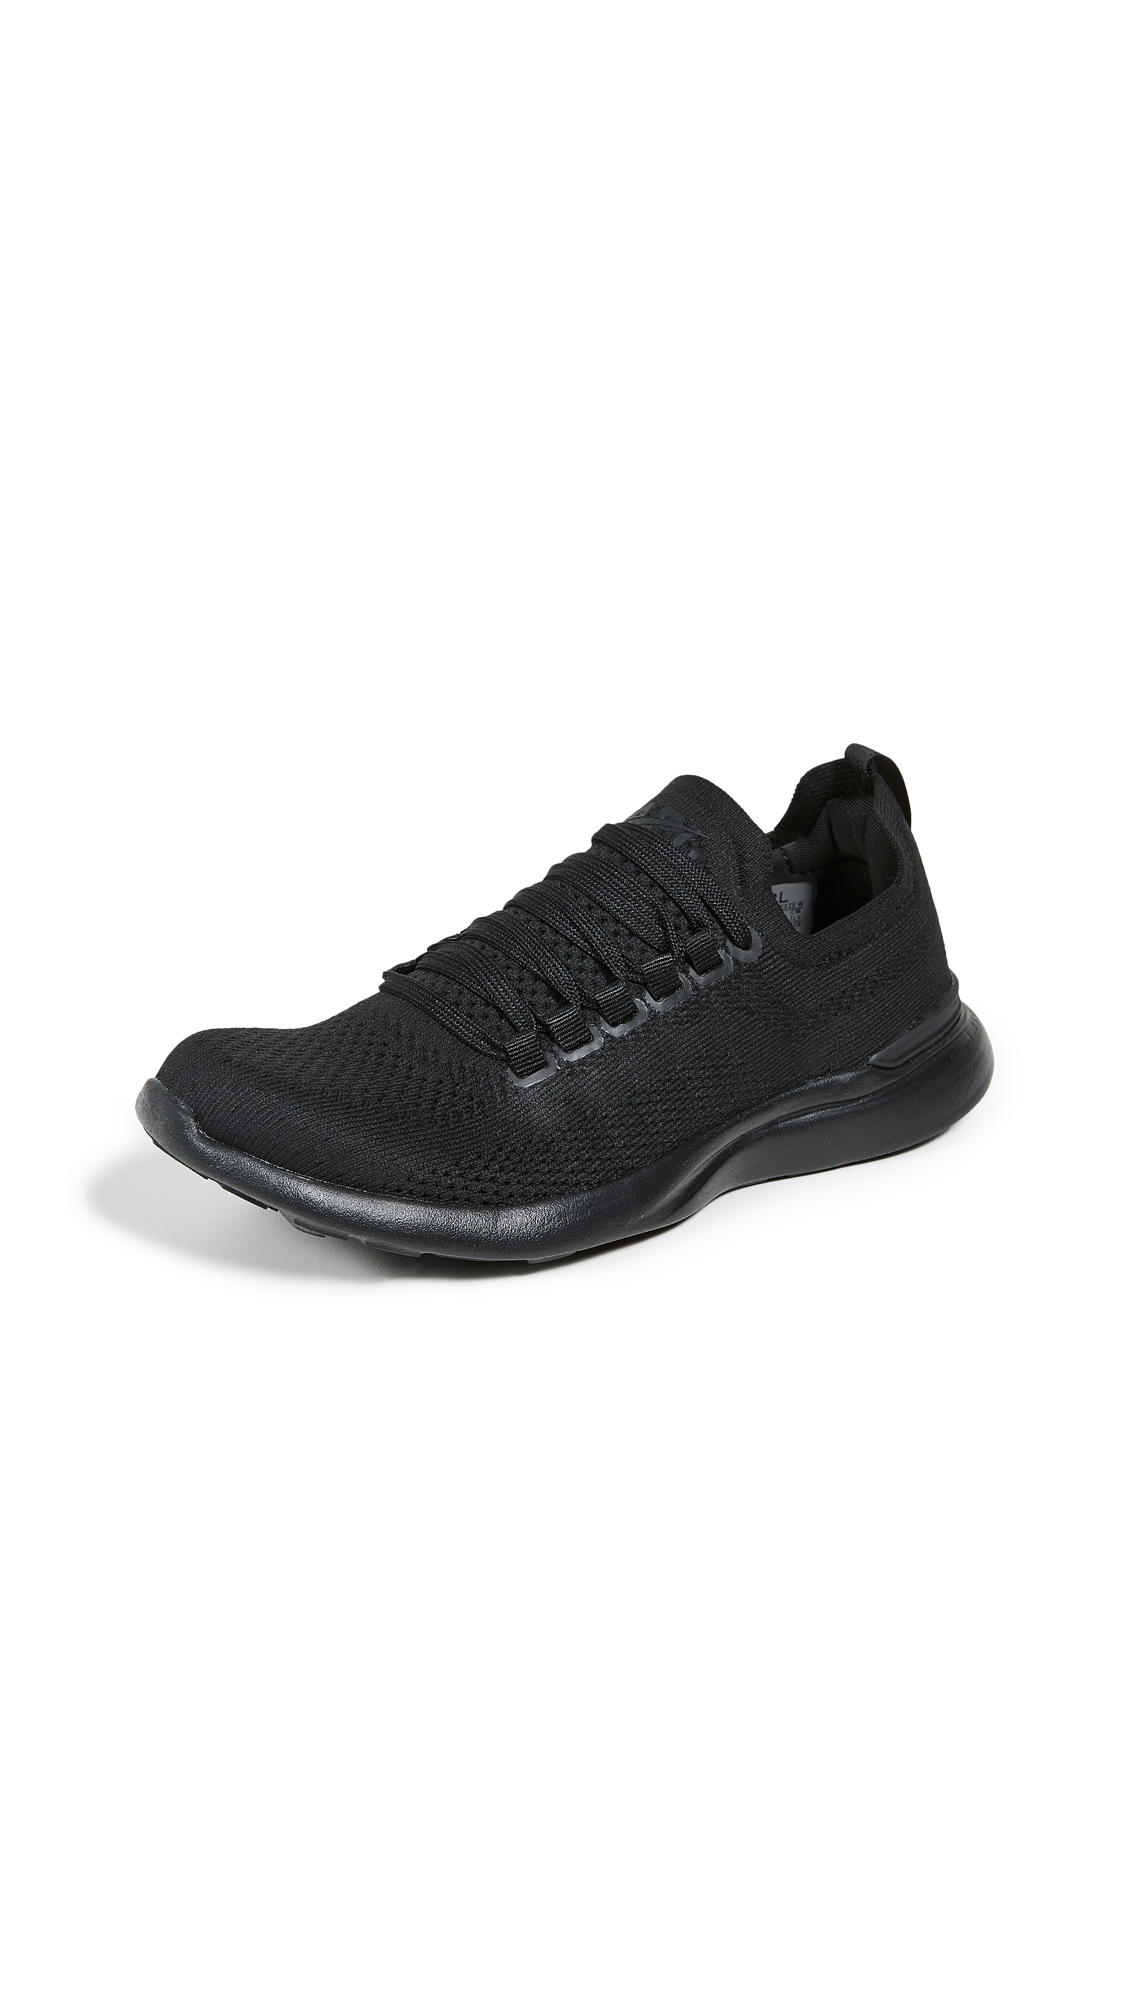 APL: Athletic Propulsion Labs TechLoom Breeze Sneakers - Black/Black